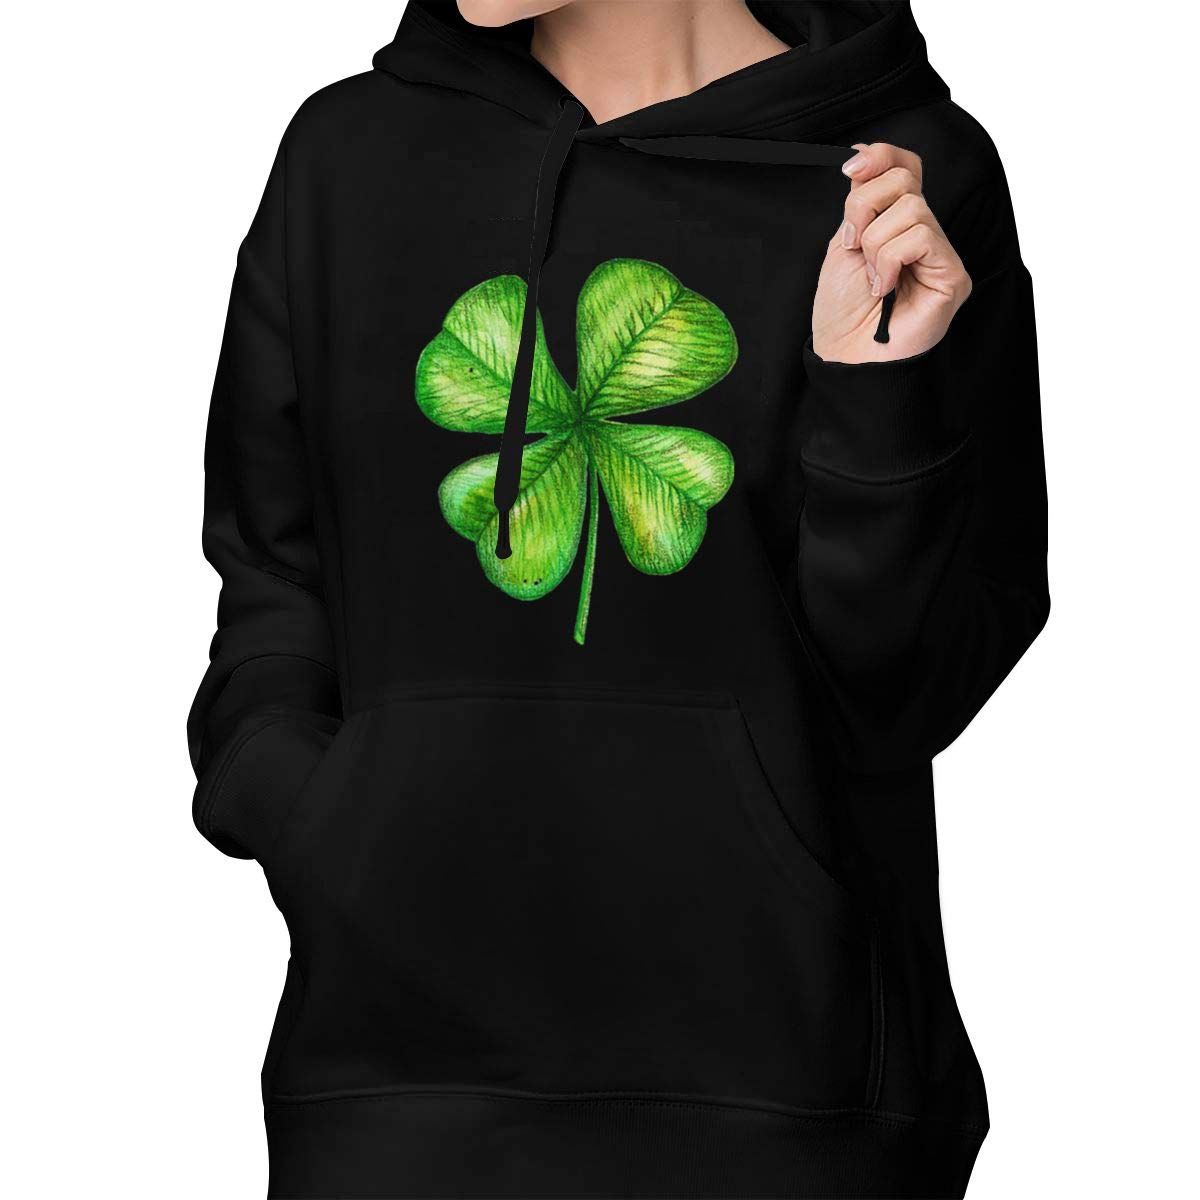 Four-Leaf Clover Womens Active Long Sleeve Pullover Hoodie Sweatshirt with Front Pocket